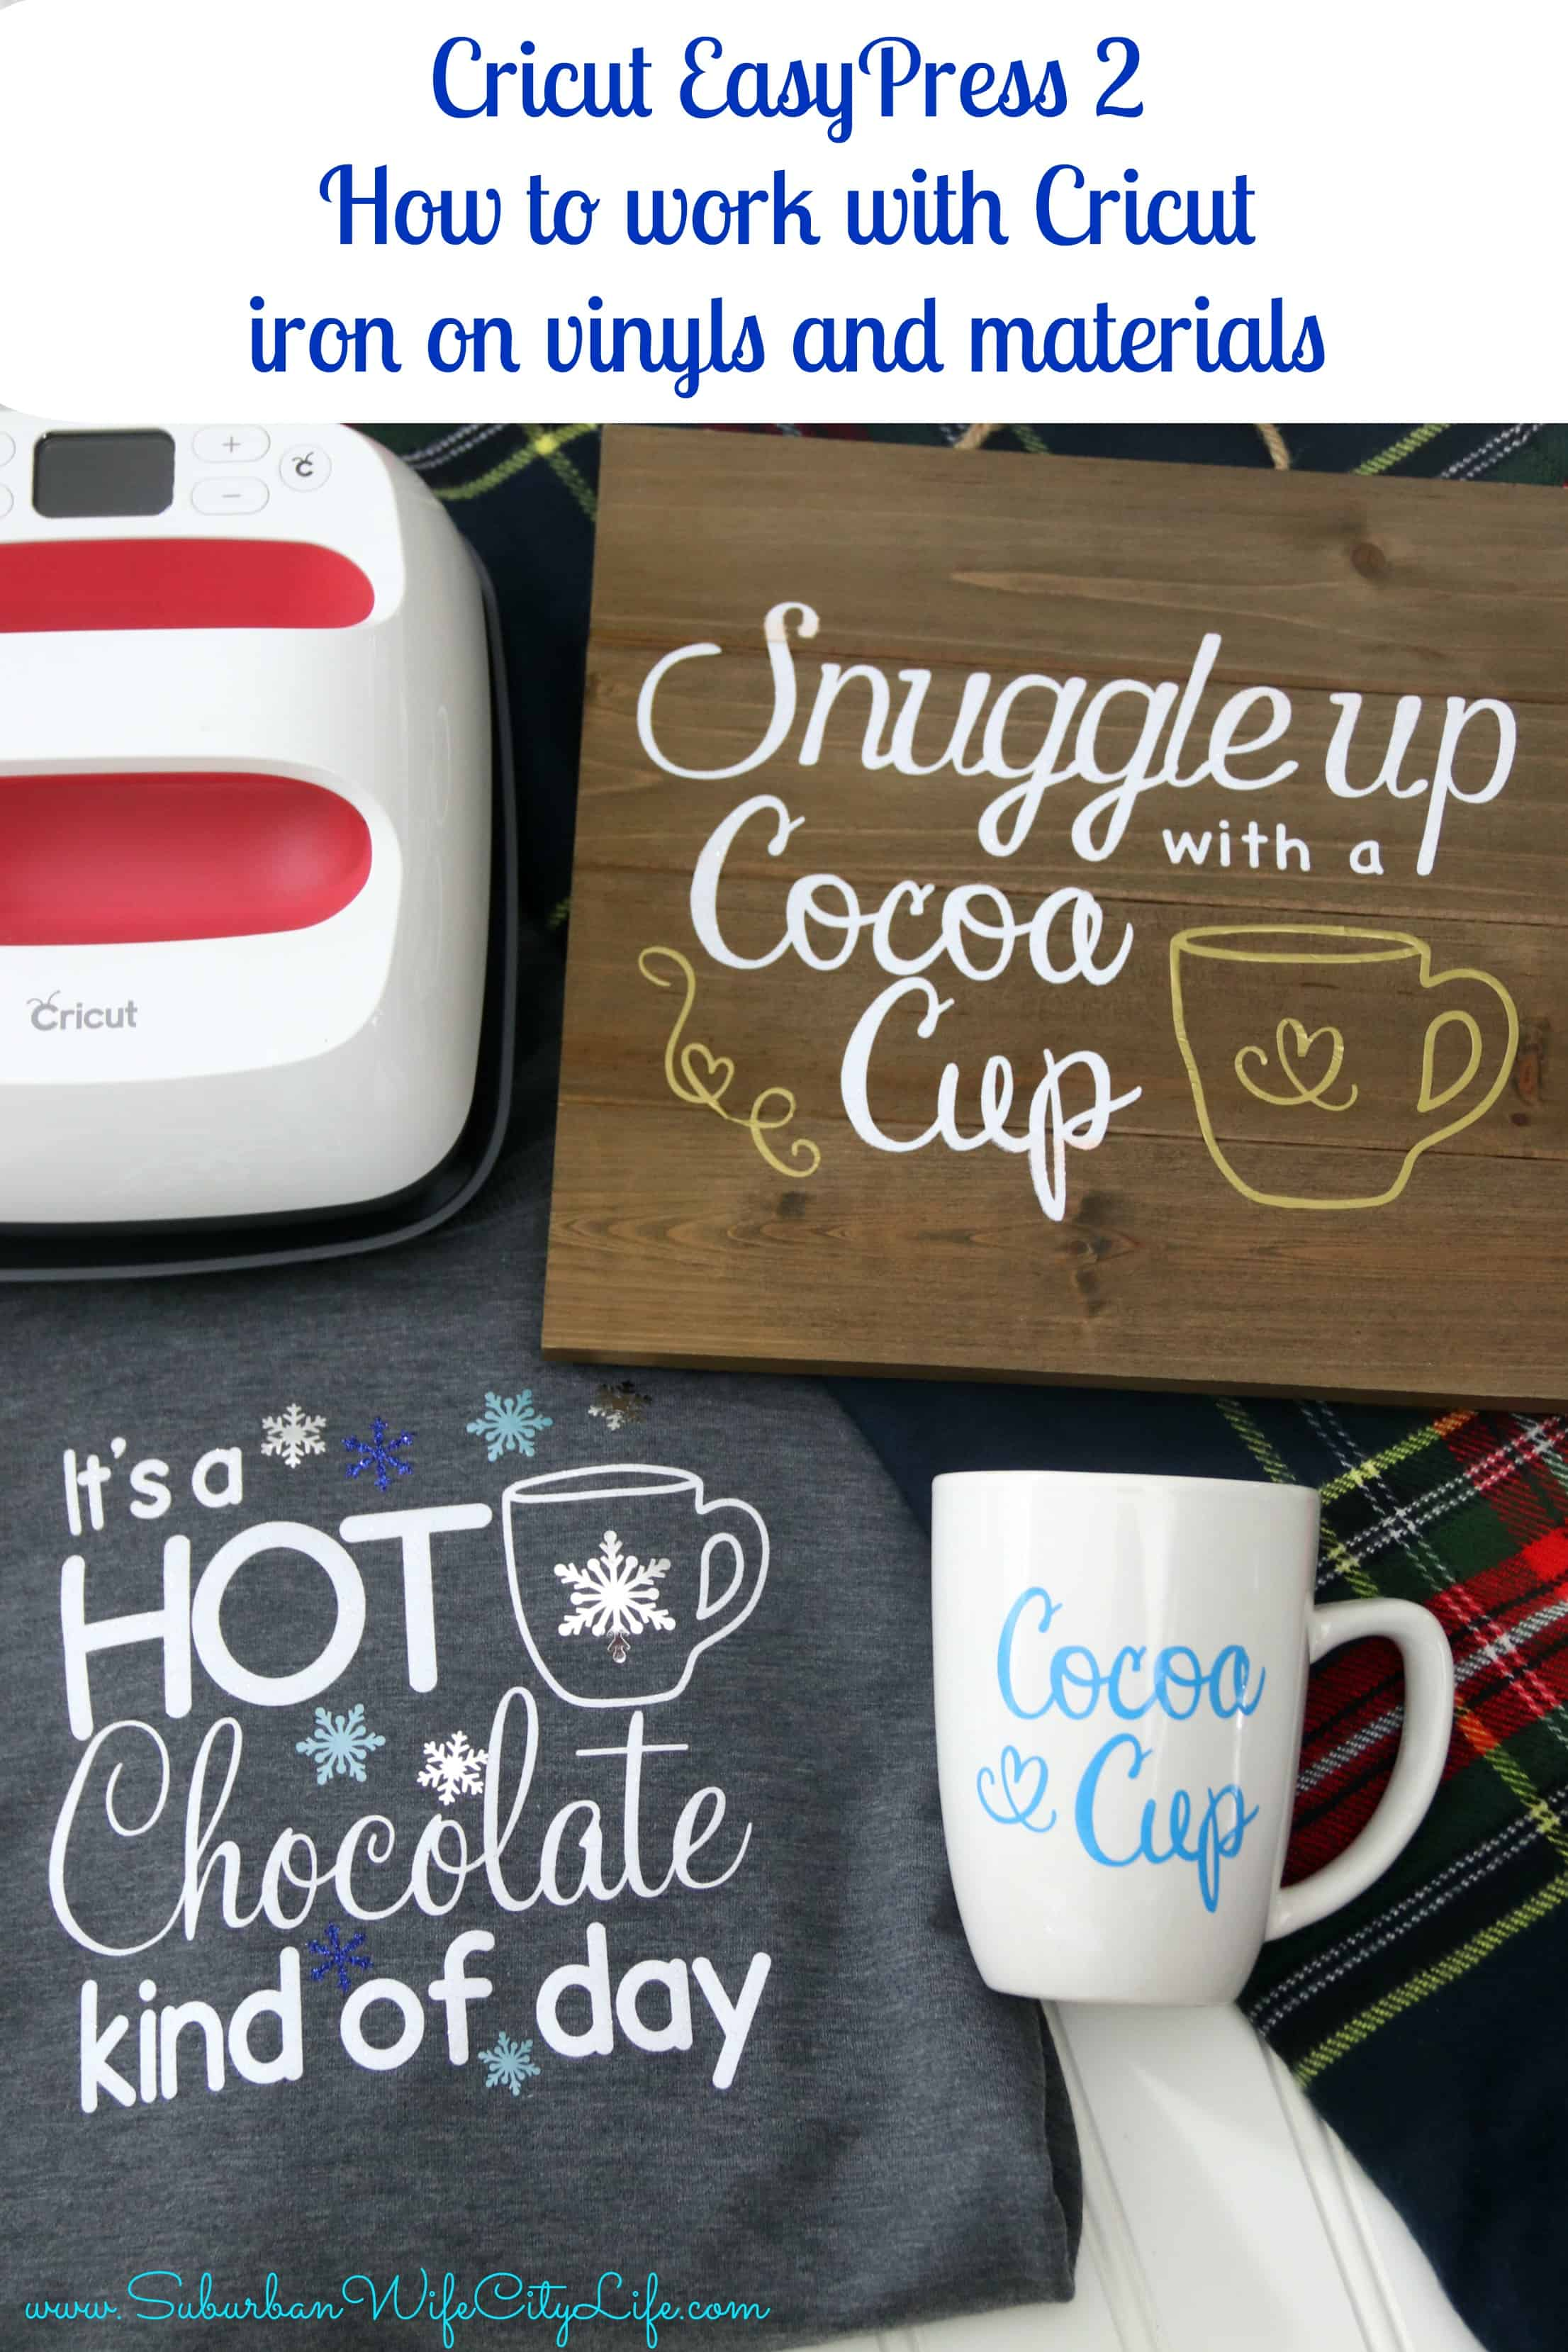 How to work with Cricut iron on vinyls and materials – EasyPress2